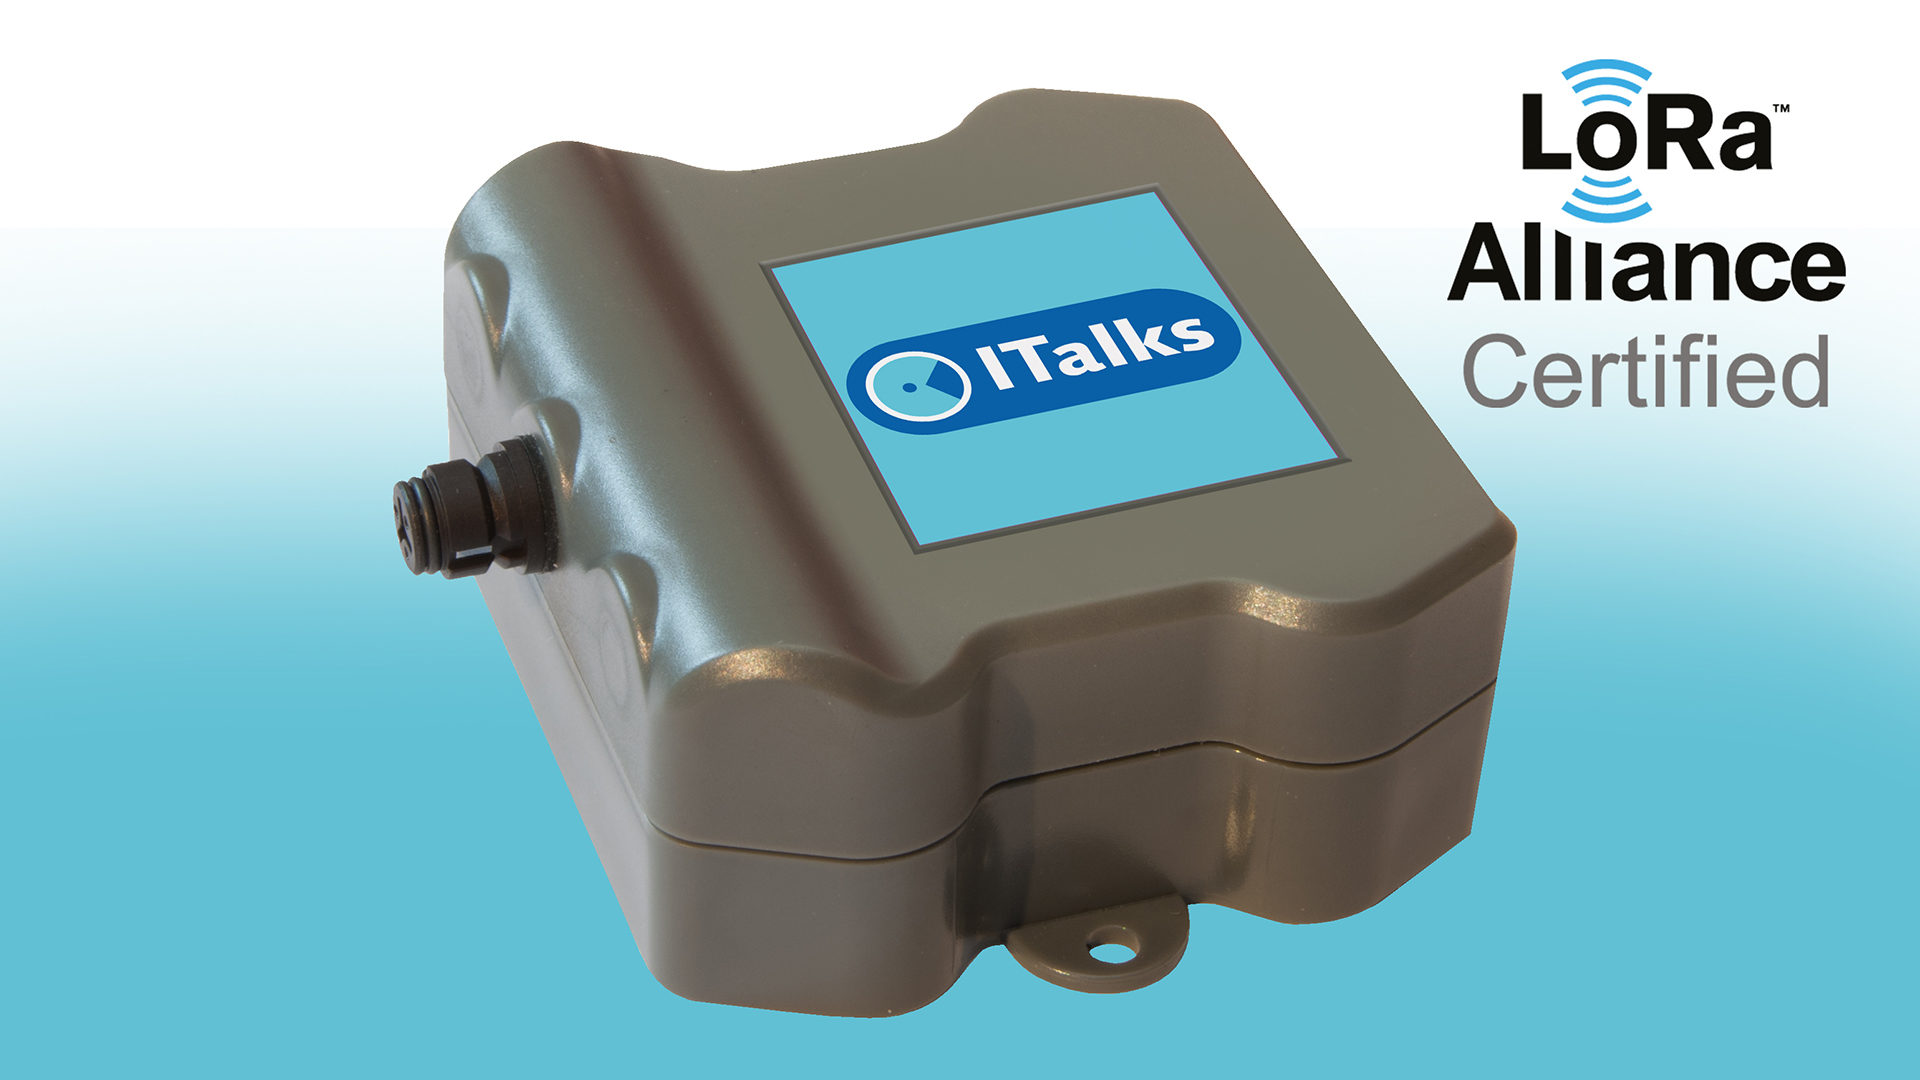 ITALKS MCS 1608 LORA SENSOR, WITH I/O AND 1-WIRE